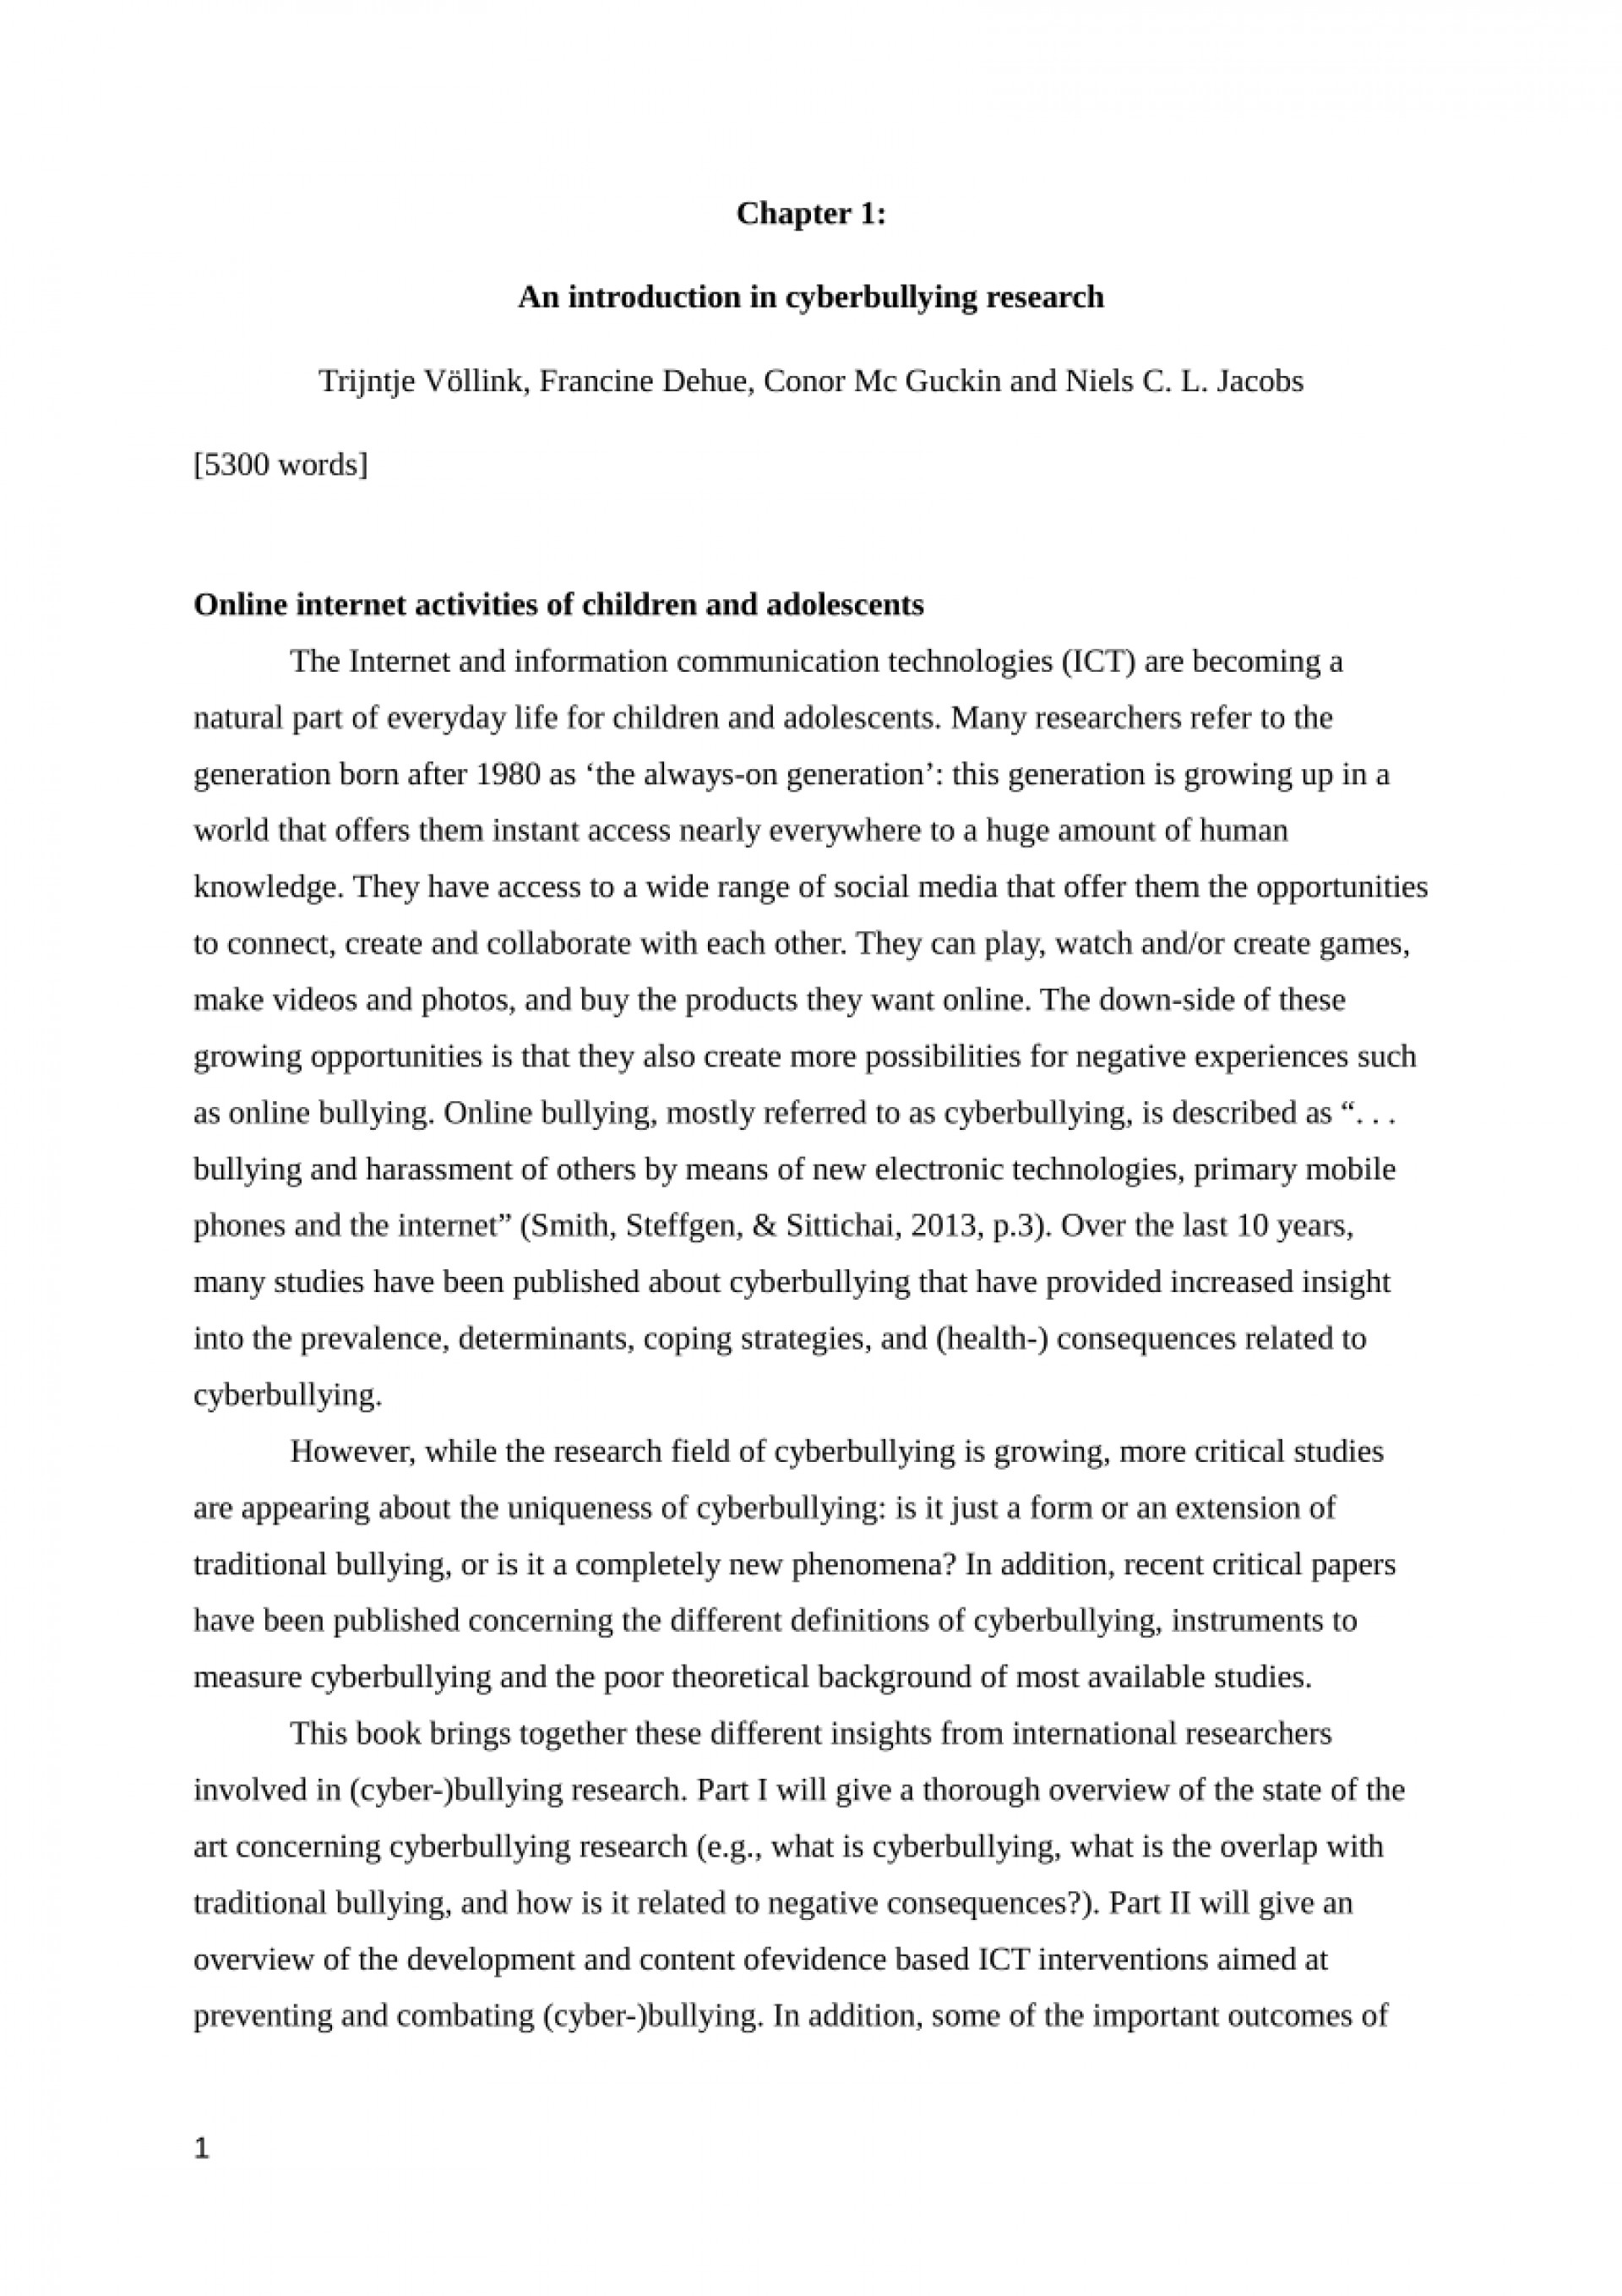 001 Cyberbullying Research Essay Paper Sensational Example Questions 1920